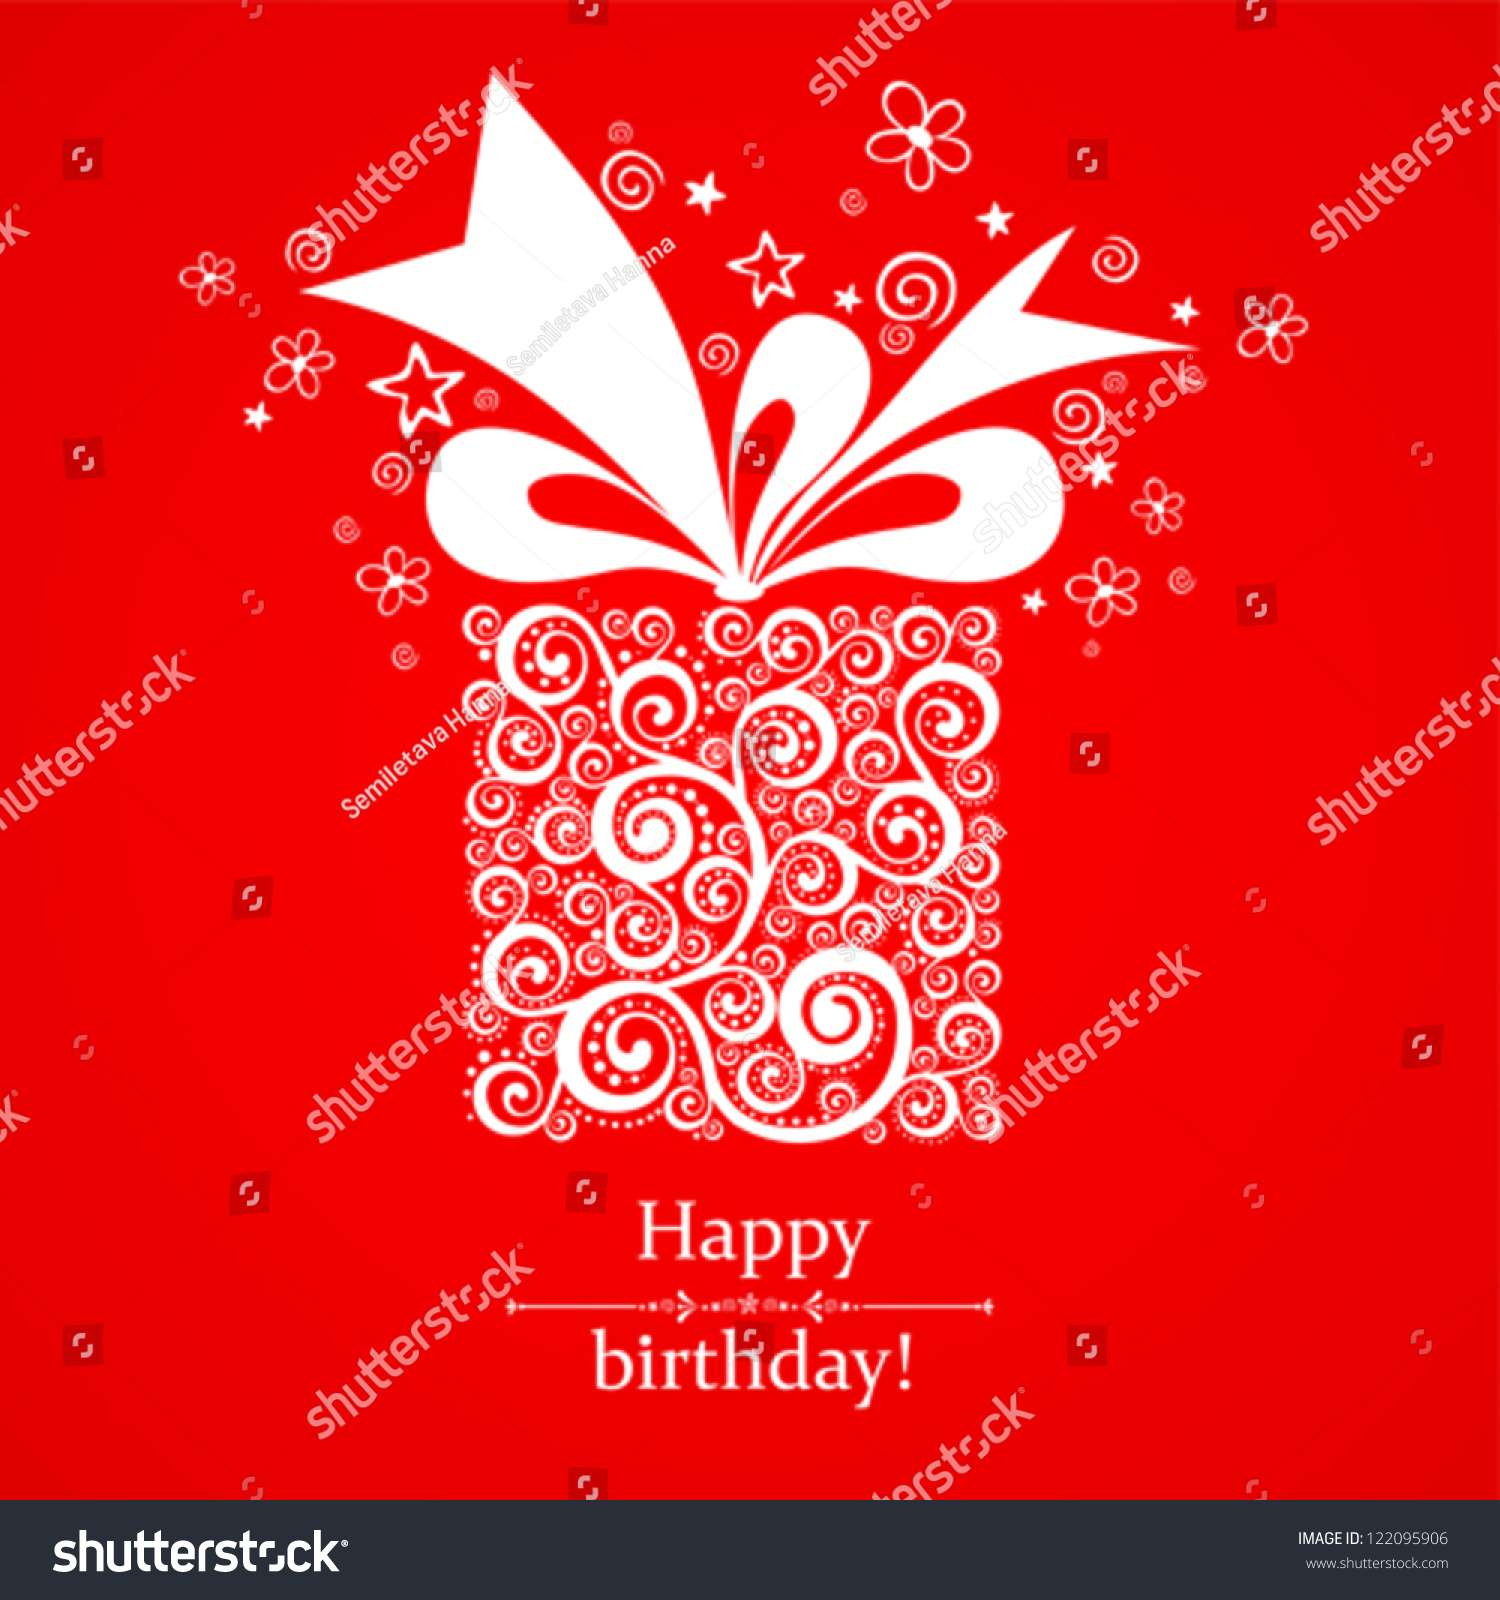 Vintage Birthday Card. Celebration Red Background With